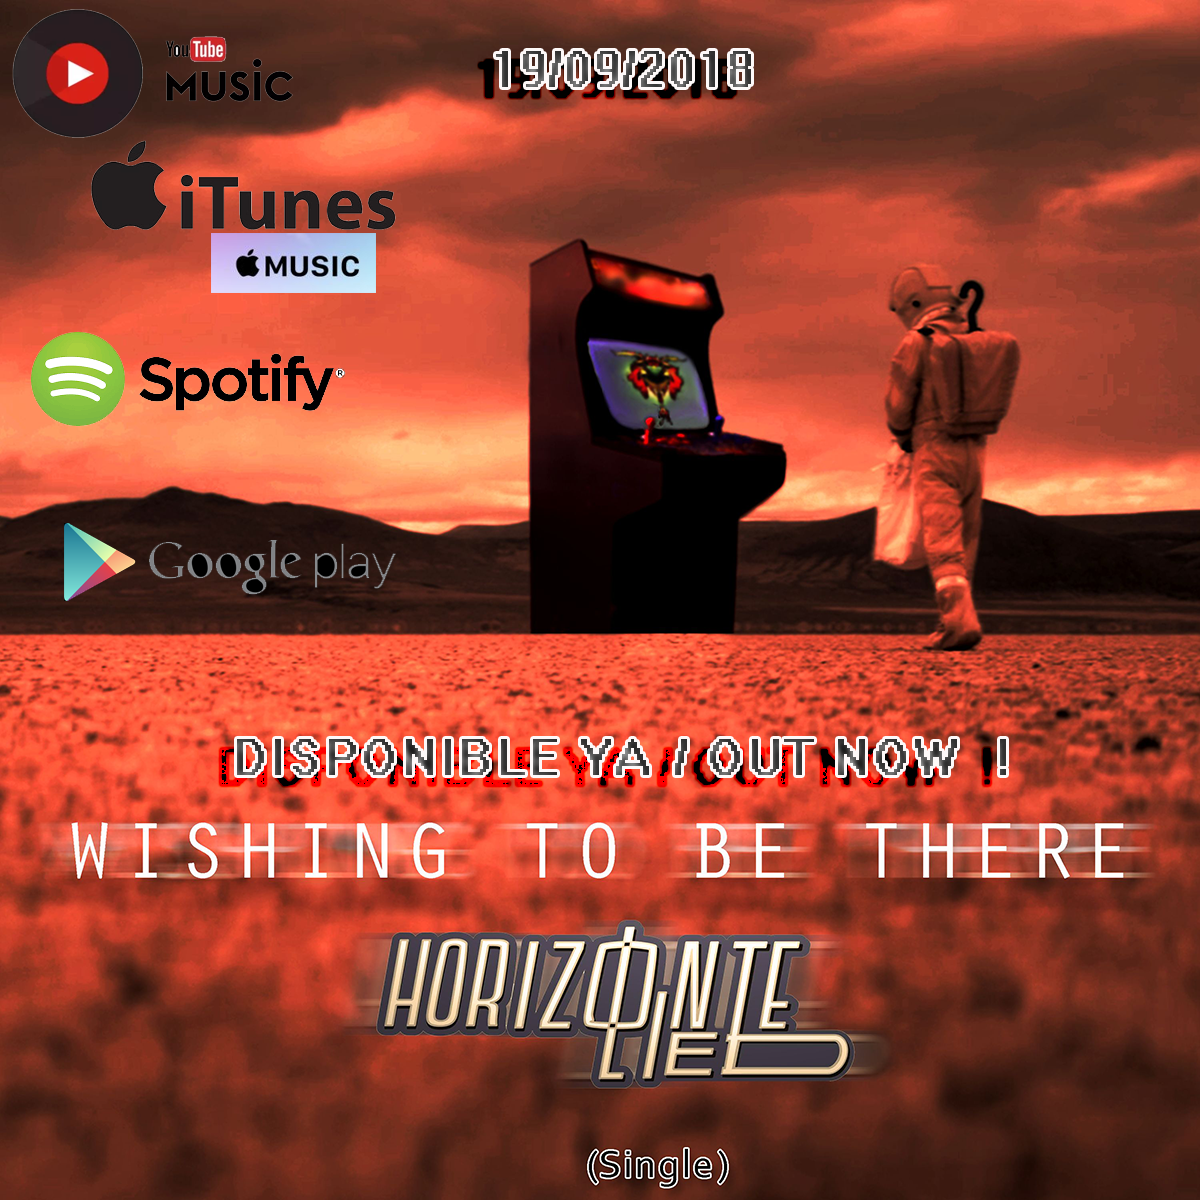 """Wishing to be there"" nuevo single lanzado y ahora disponible en todas partes!"